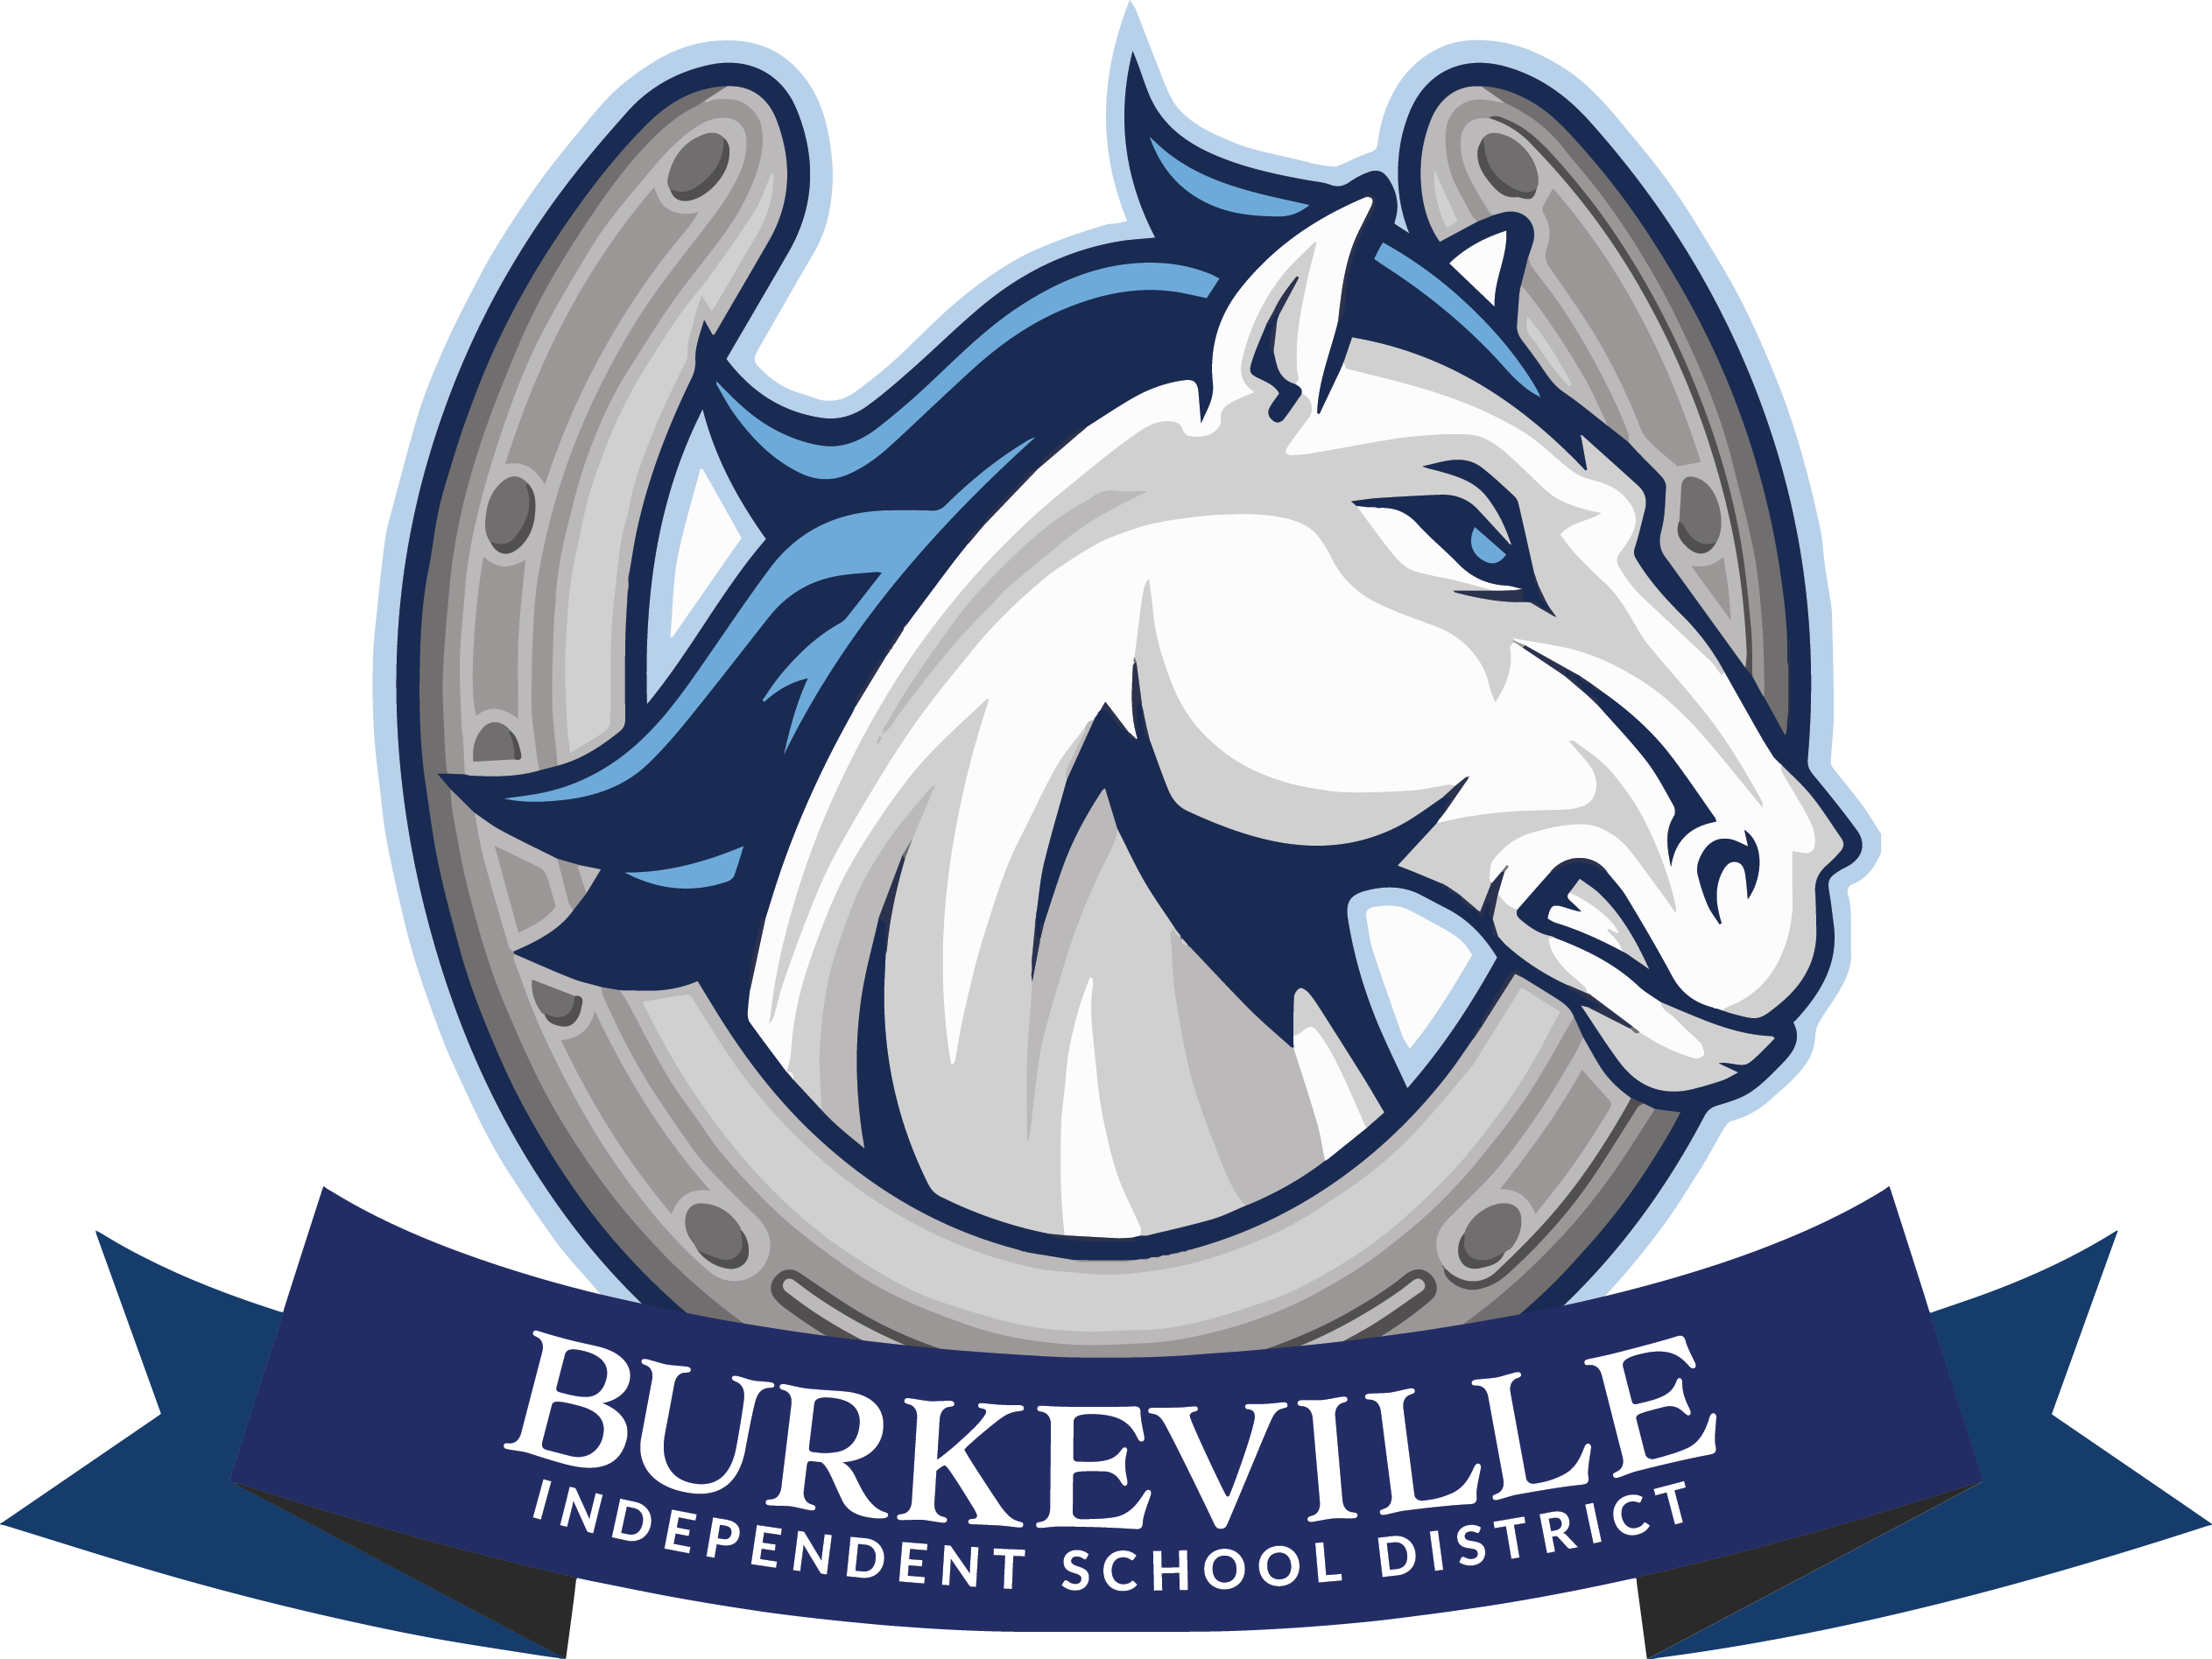 Burkeville Independent School District